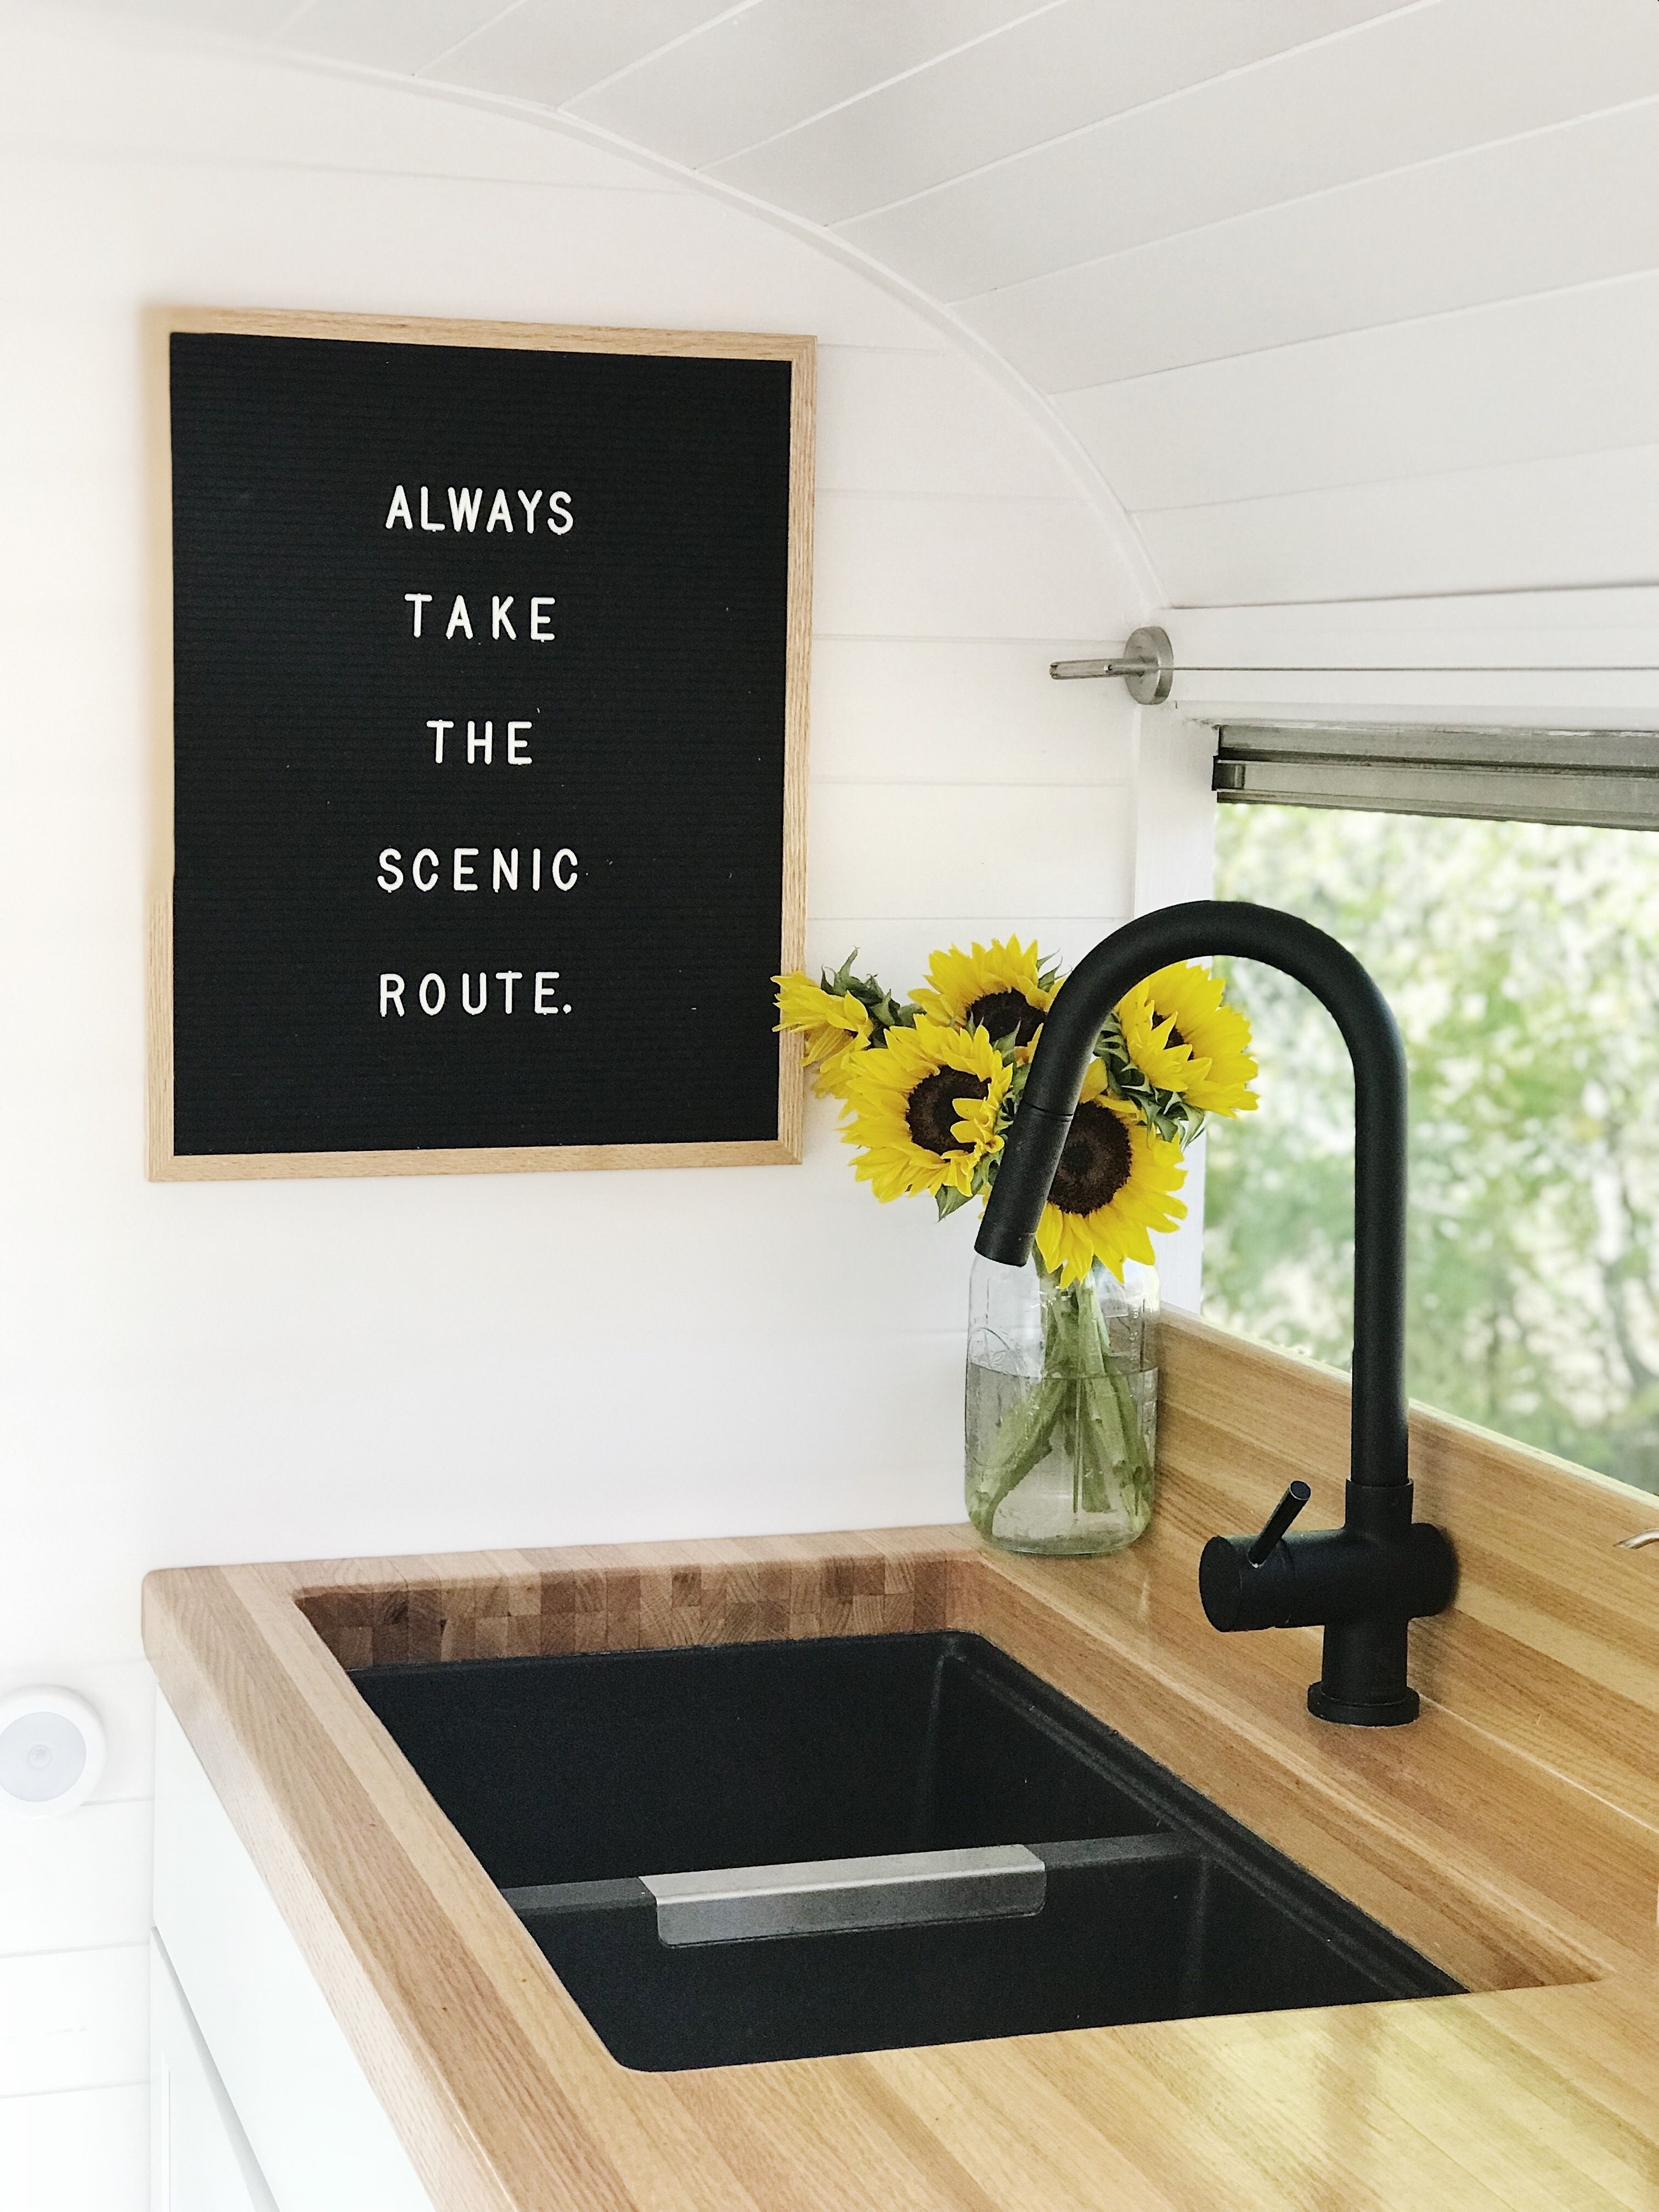 Skoolie Kitchen, Converted School Bus, Tiny House